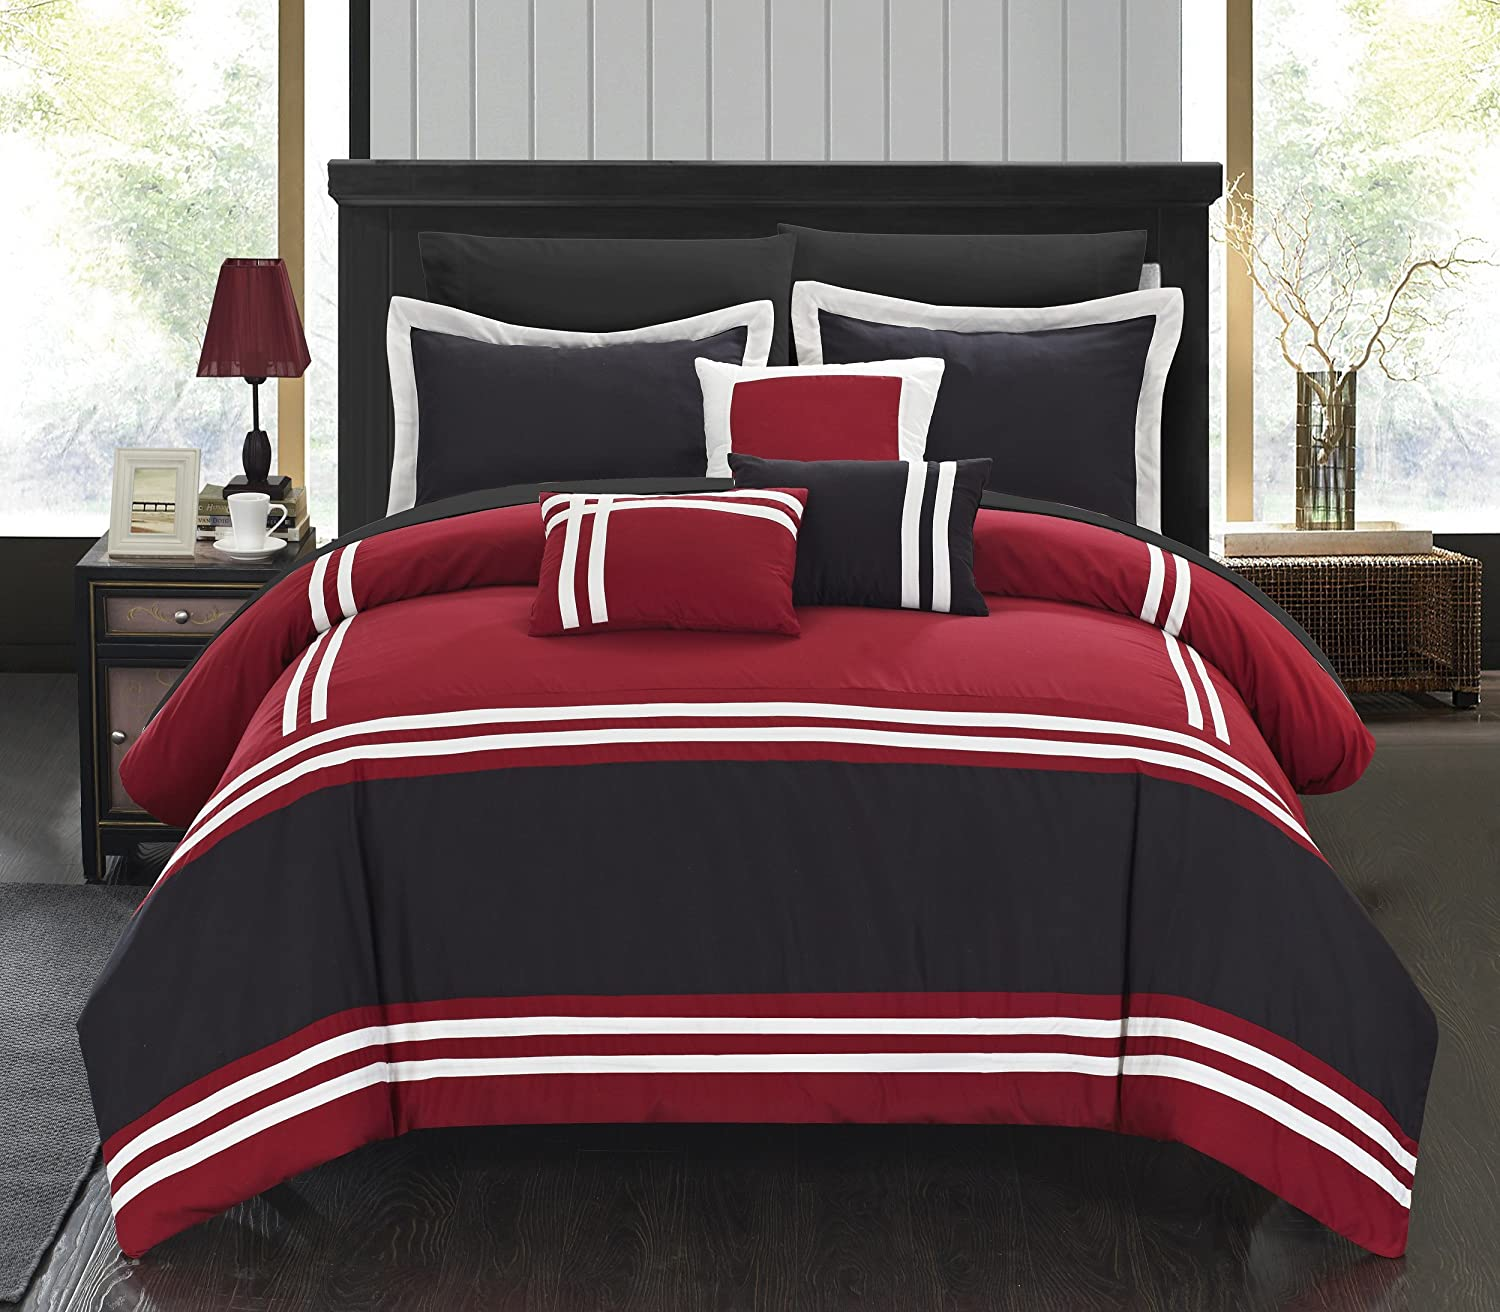 Bedding with Sheet Set and Decorative Pillows Shams Included, Queen Red